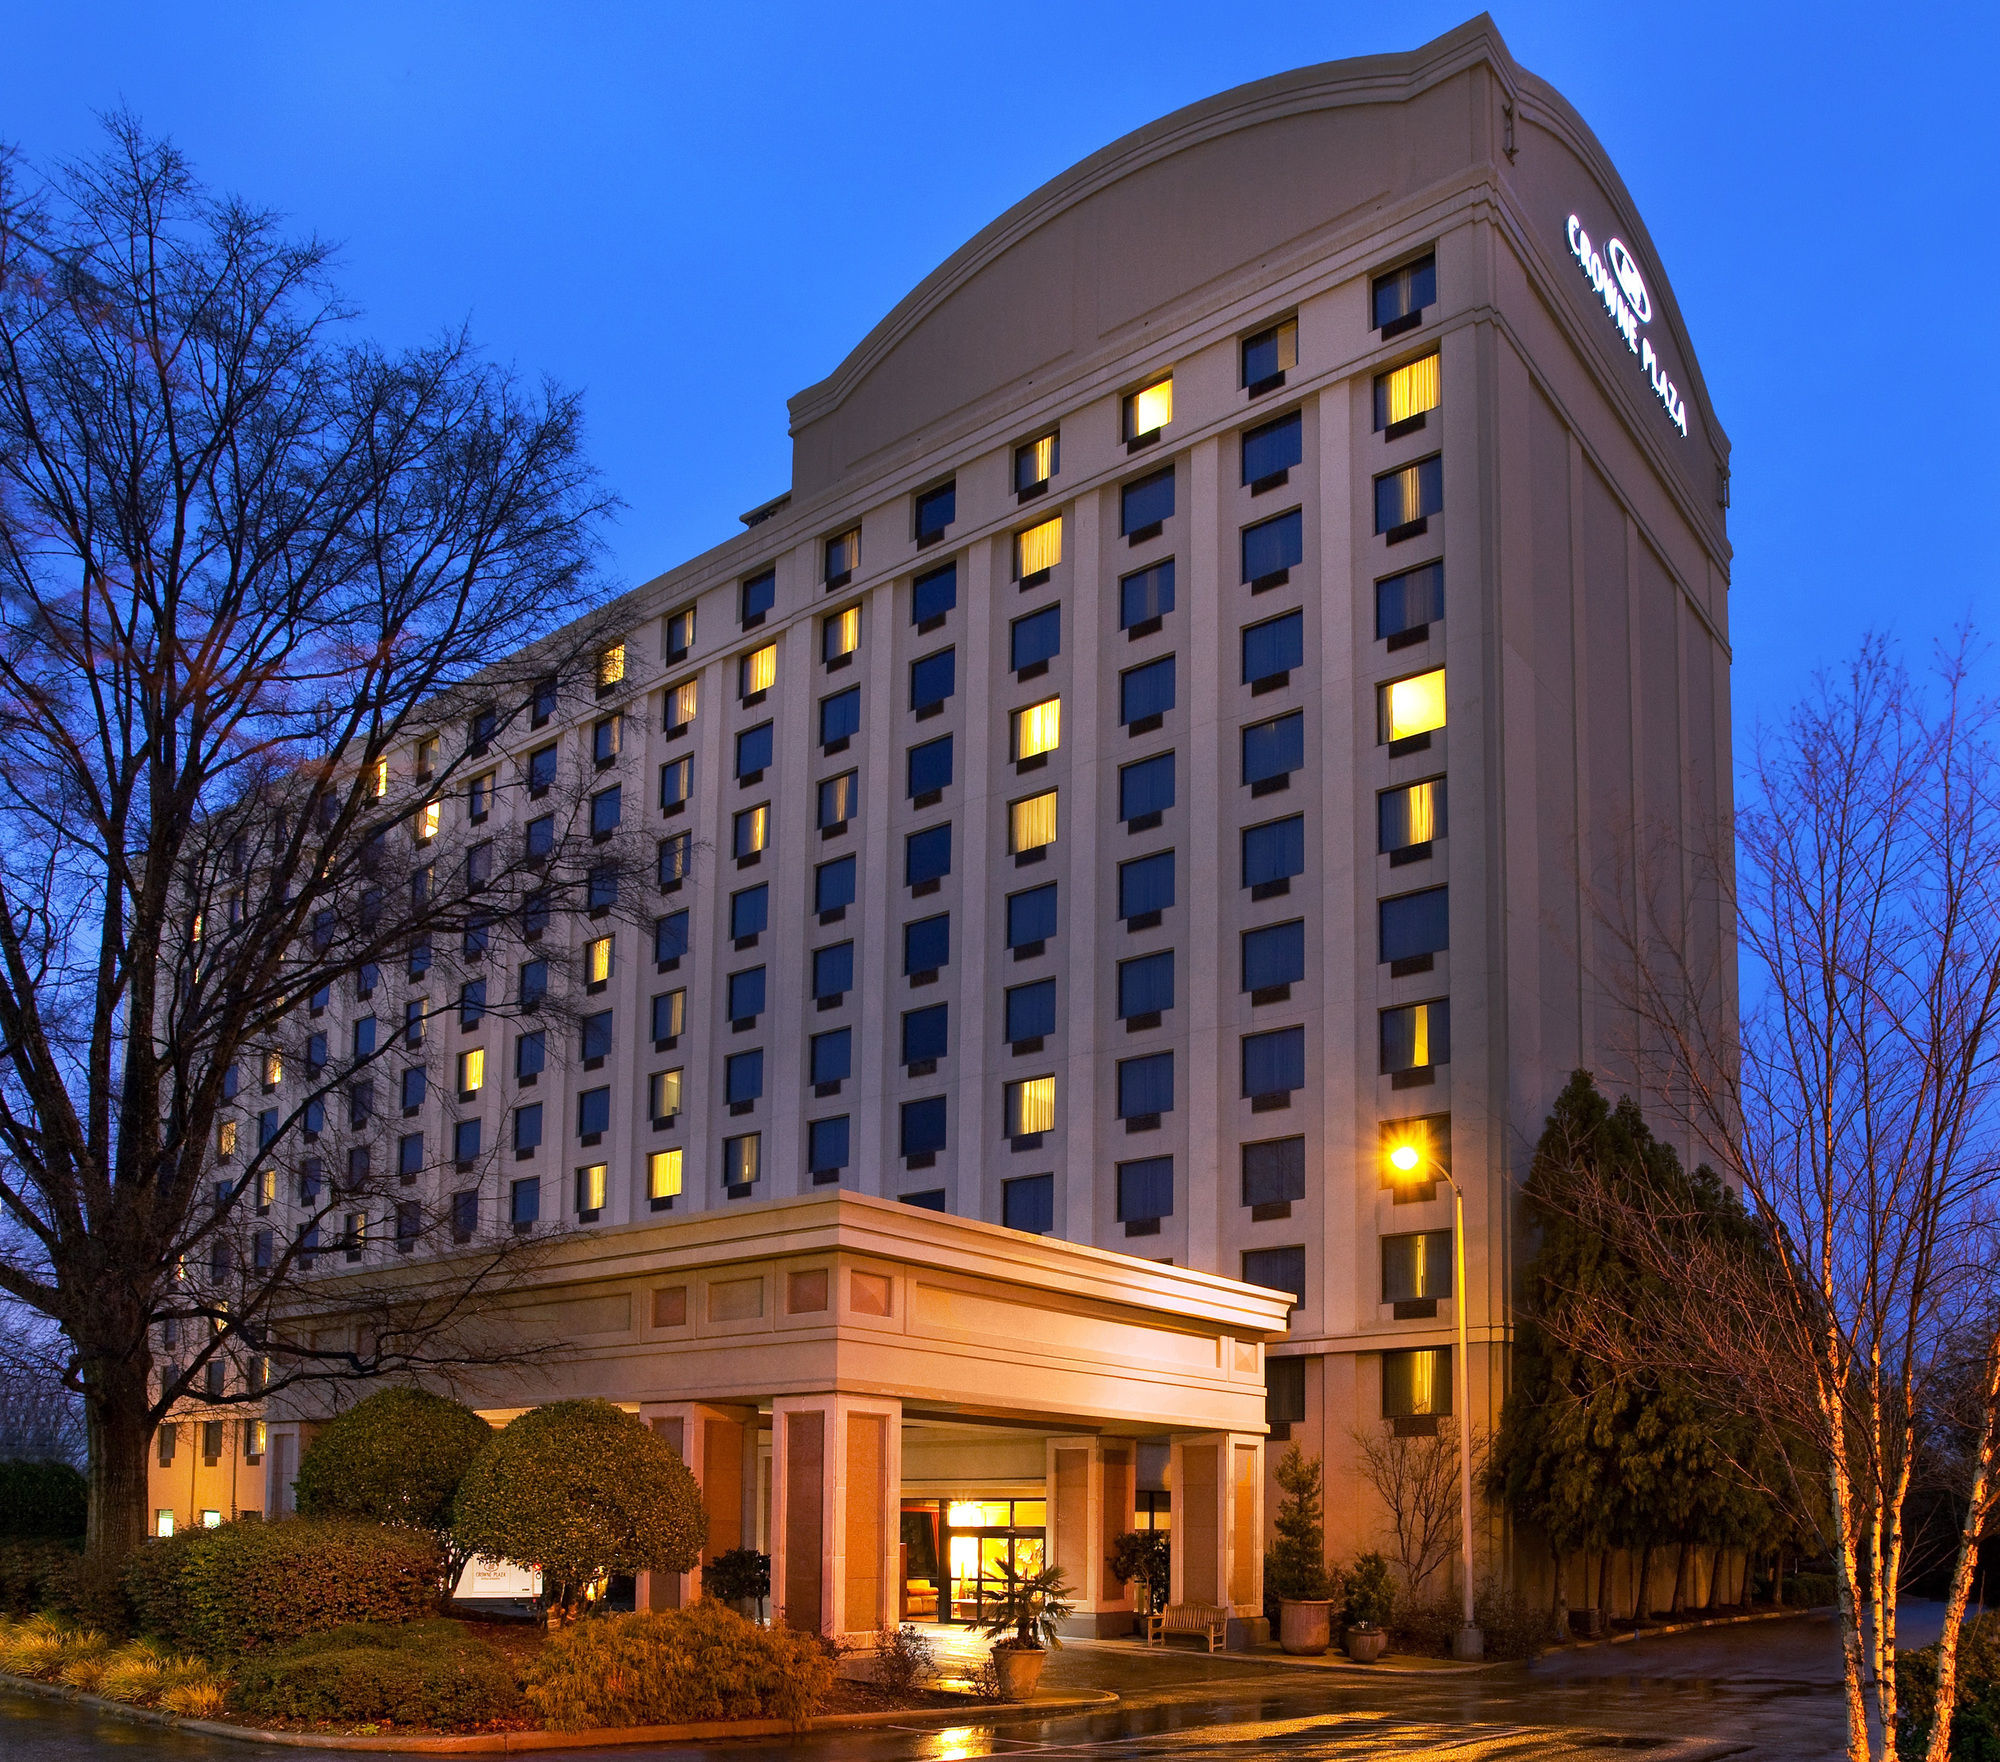 SAVE! See TripAdvisor's Atlanta, GA hotel deals and special prices on 30+ hotels all in one spot. Find the perfect hotel within your budget with reviews from real travelers.